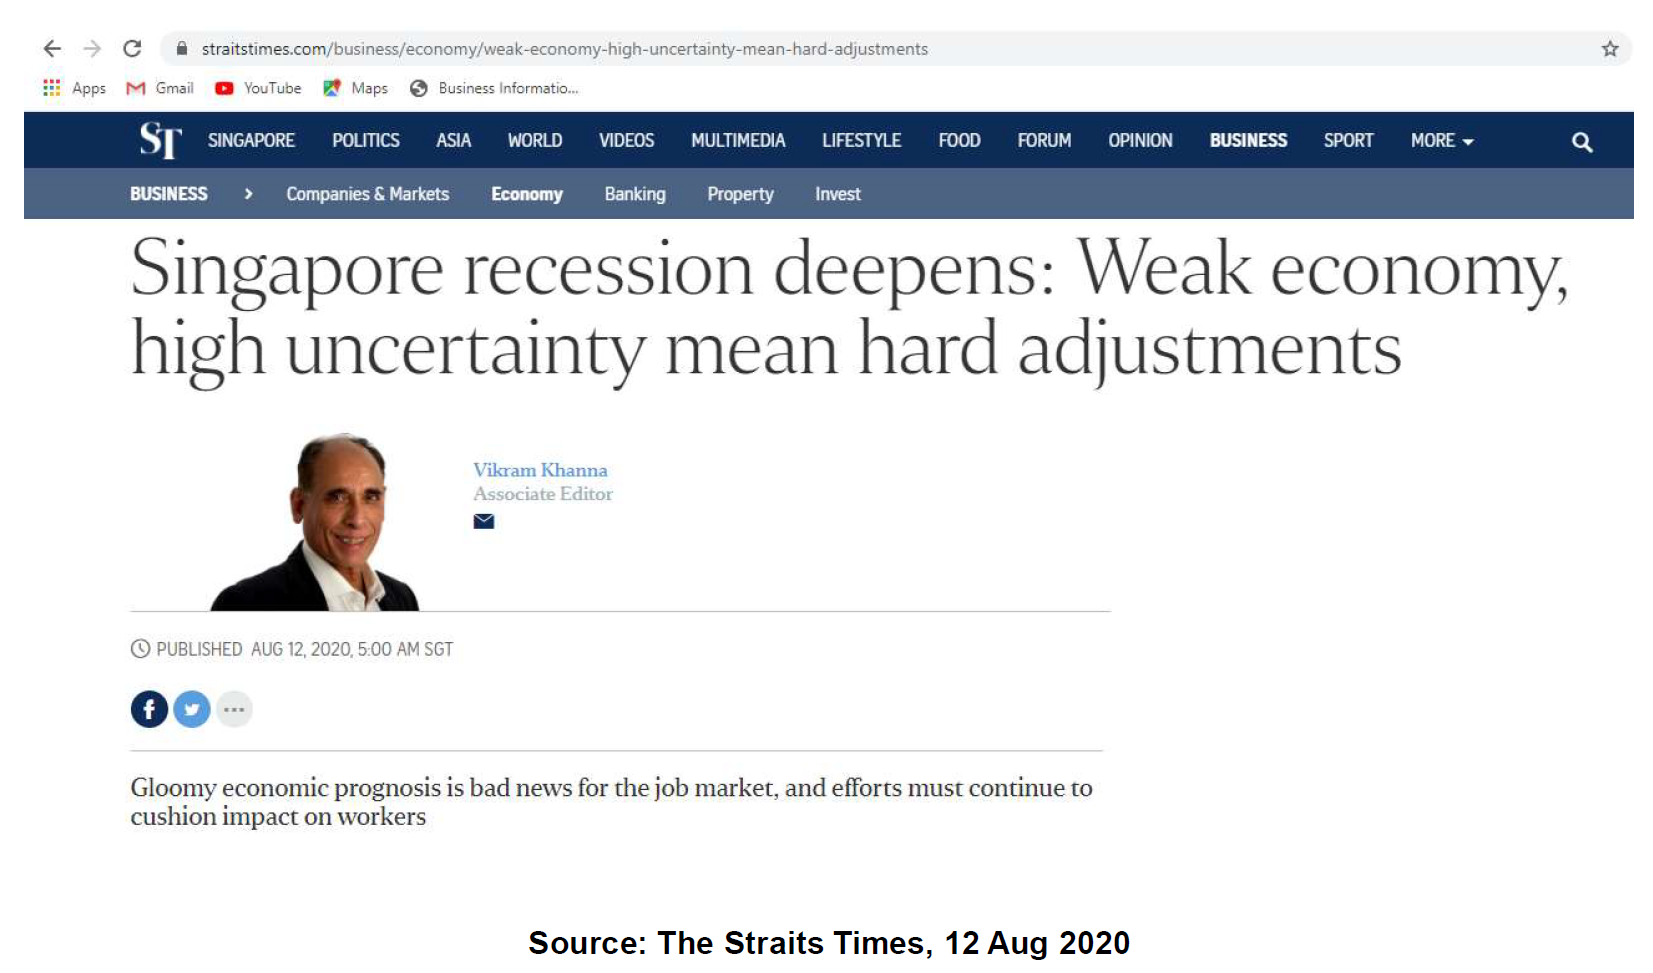 Singapore is entering recession in 2020 due to covid-19